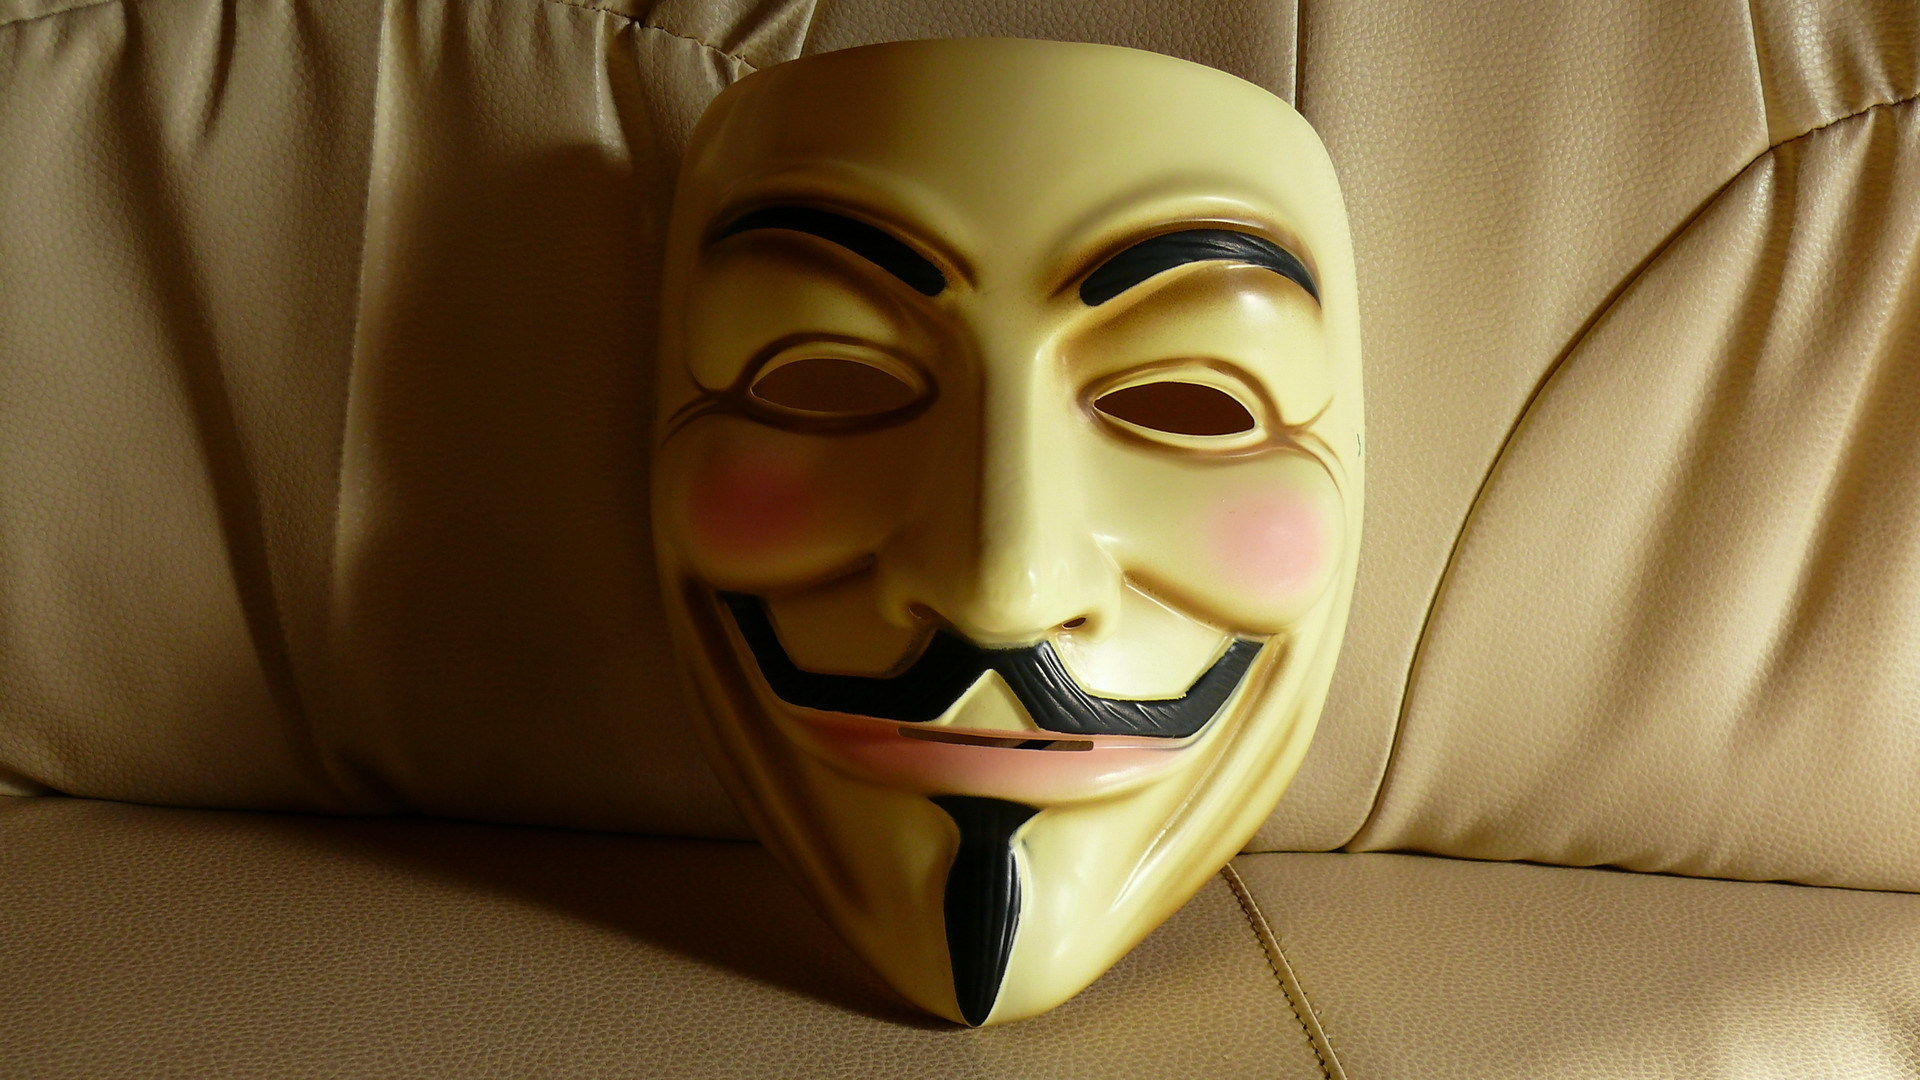 Guy Fawkes Night is celebrated in Britain annually on November 5th The event is accompanied by firework displays the lighting of bonfires and the ceremonial effigy